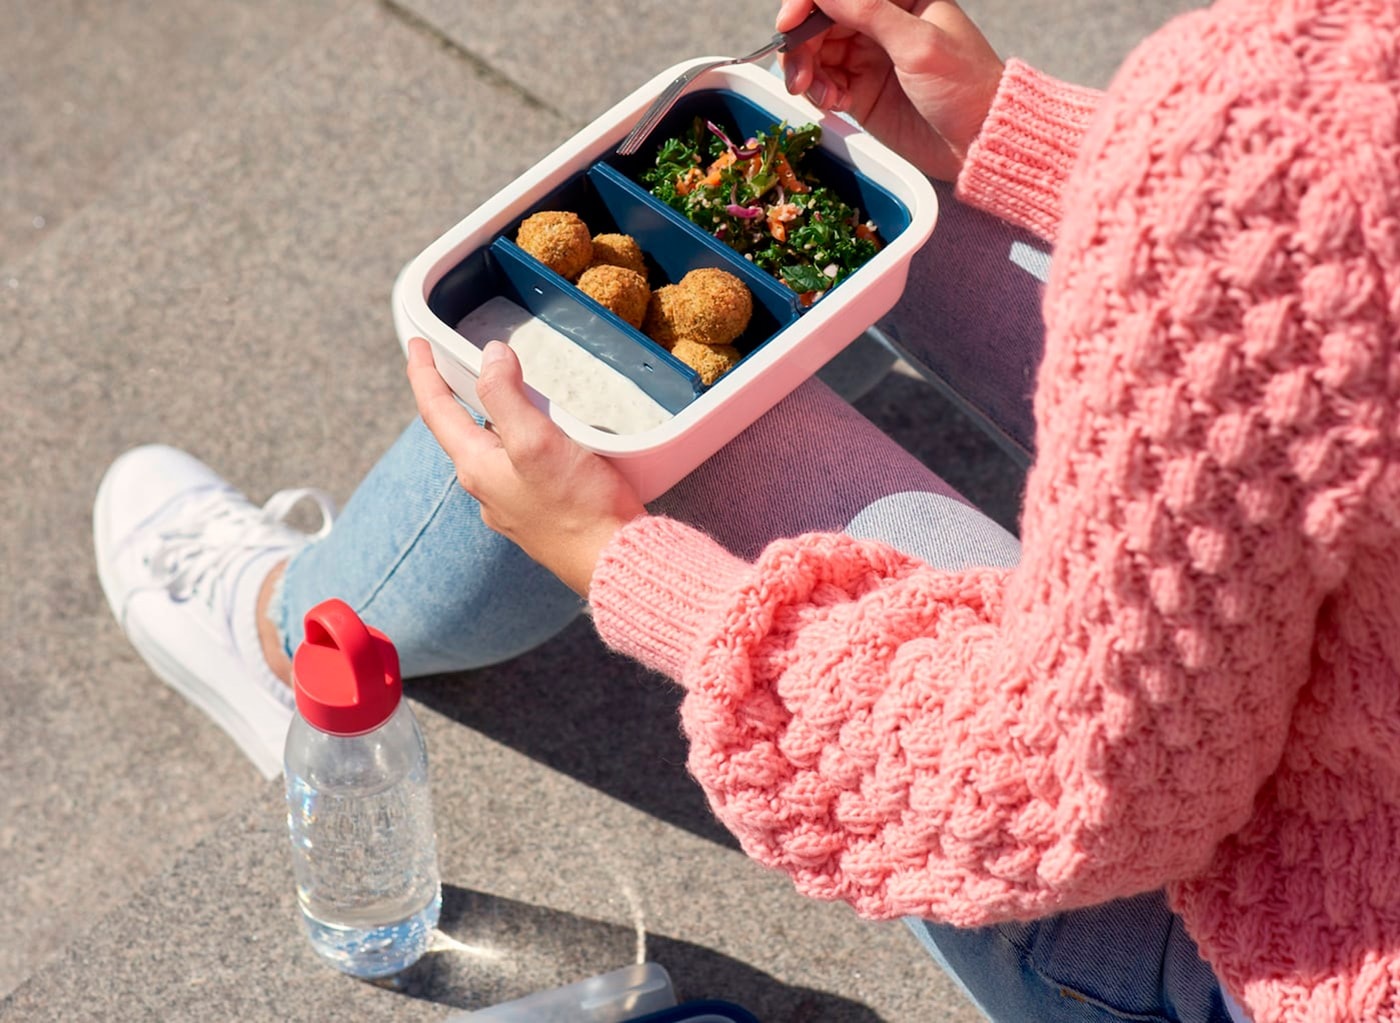 A woman eating from an IKEA plastic food container, with a transparent plastic bottle filled with water beside her.